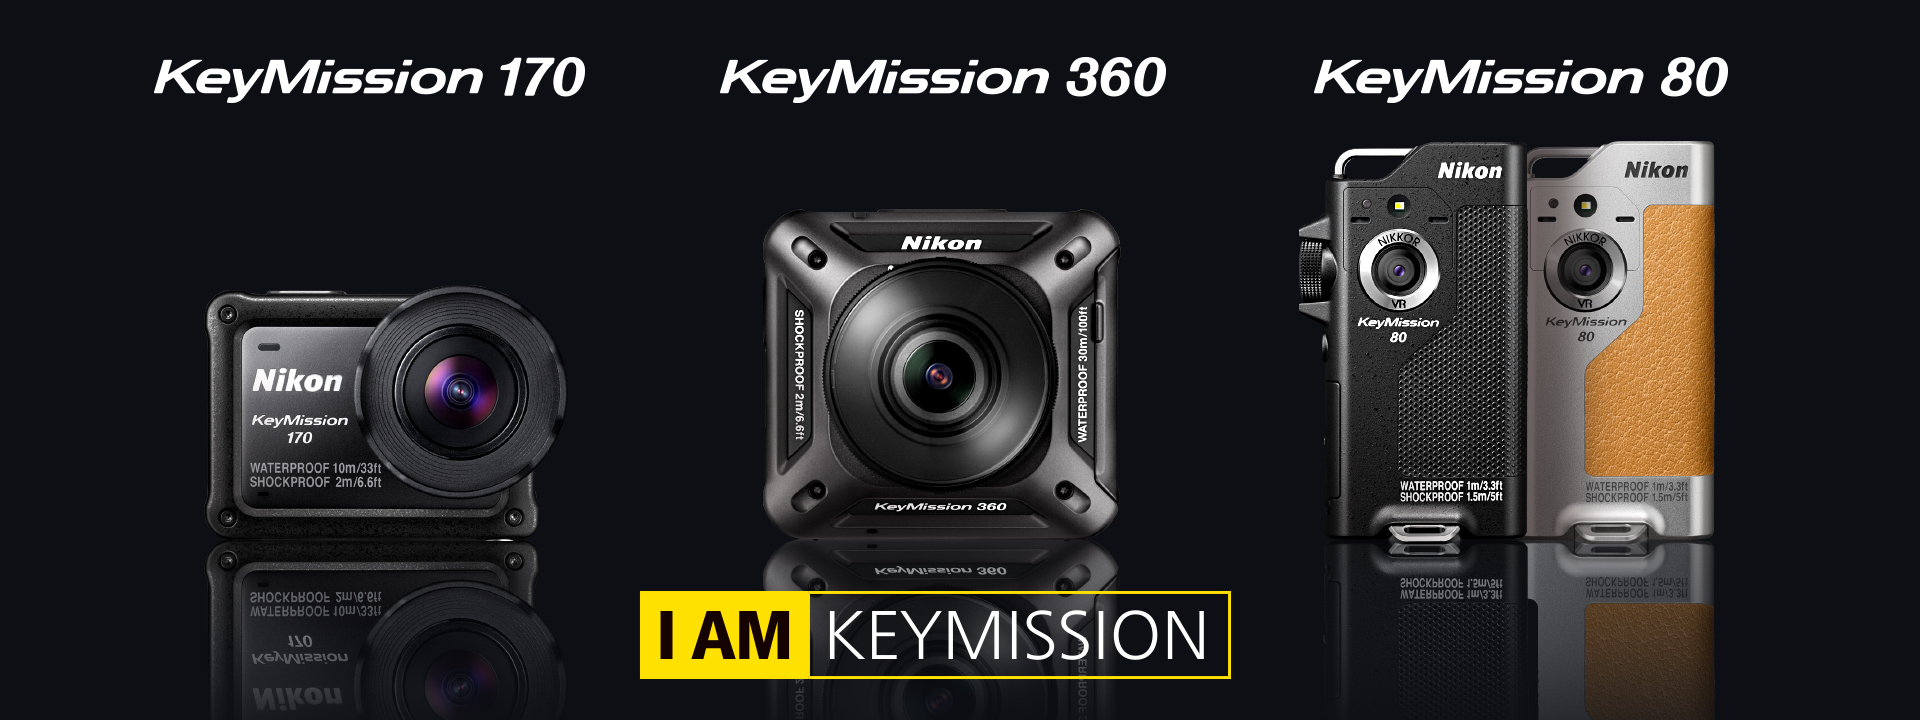 I AM KEYMISSION